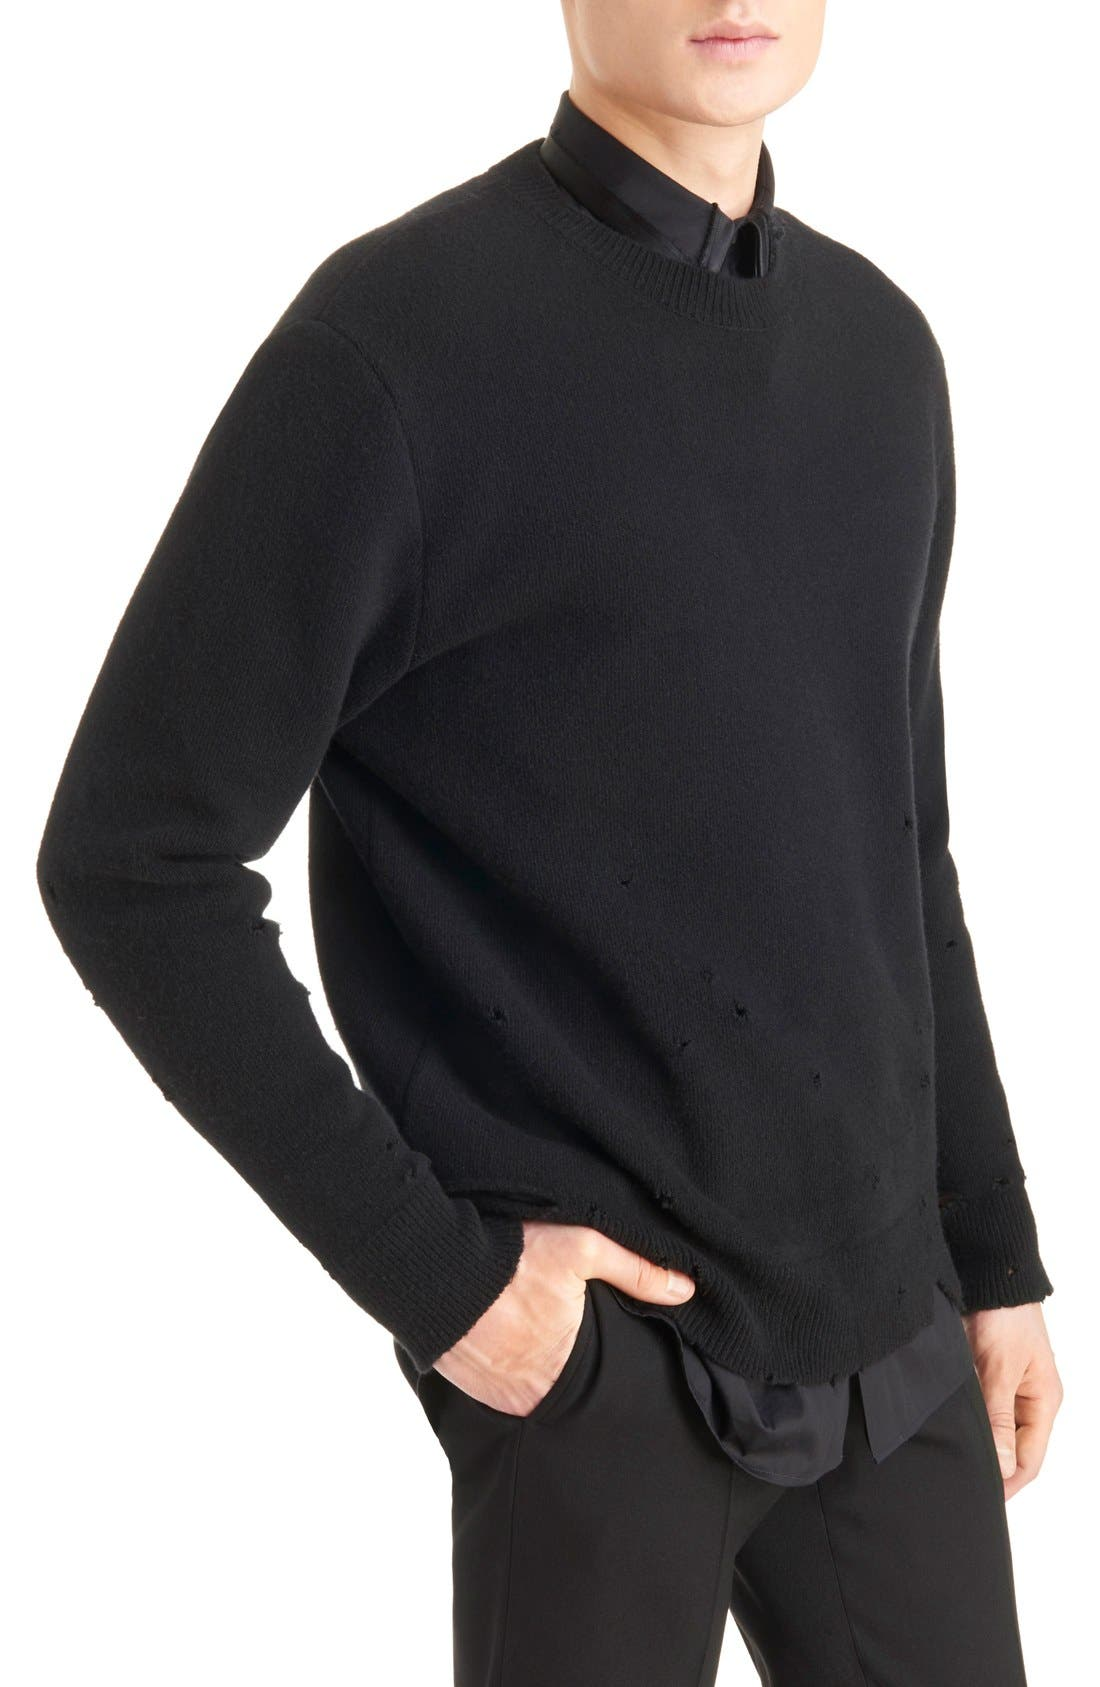 Destroyed Wool Sweater,                             Alternate thumbnail 4, color,                             Black